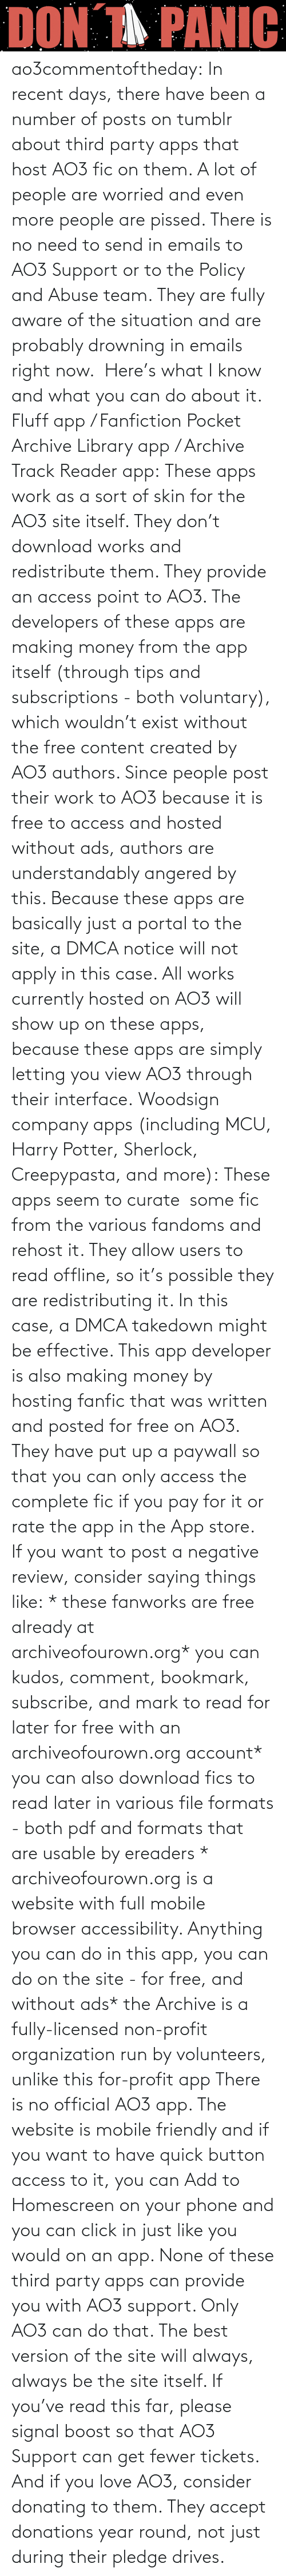 harry: ao3commentoftheday: In recent days, there have been a number of posts on tumblr about third party apps that host AO3 fic on them. A lot of people are worried and even more people are pissed.  There is no need to send in emails to AO3 Support or to the Policy and Abuse team. They are fully aware of the situation and are probably drowning in emails right now.  Here's what I know and what you can do about it.  Fluff app / Fanfiction Pocket Archive Library app / Archive Track Reader app: These apps work as a sort of skin for the AO3 site itself. They don't download works and redistribute them. They provide an access point to AO3.  The developers of these apps are making money from the app itself (through tips and subscriptions - both voluntary), which wouldn't exist without the free content created by AO3 authors. Since people post their work to AO3 because it is free to access and hosted without ads, authors are understandably angered by this.  Because these apps are basically just a portal to the site, a DMCA notice will not apply in this case. All works currently hosted on AO3 will show up on these apps, because these apps are simply letting you view AO3 through their interface. Woodsign company apps (including MCU, Harry Potter, Sherlock, Creepypasta, and more): These apps seem to curate  some fic from the various fandoms and rehost it. They allow users to read offline, so it's possible they are redistributing it. In this case, a DMCA takedown might be effective.  This app developer is also making money by hosting fanfic that was written and posted for free on AO3. They have put up a paywall so that you can only access the complete fic if you pay for it or rate the app in the App store.  If you want to post a negative review, consider saying things like: * these fanworks are free already at archiveofourown.org* you can kudos, comment, bookmark, subscribe, and mark to read for later for free with an archiveofourown.org account* you can also download fics to read later in various file formats - both pdf and formats that are usable by ereaders * archiveofourown.org is a website with full mobile browser accessibility. Anything you can do in this app, you can do on the site - for free, and without ads* the Archive is a fully-licensed non-profit organization run by volunteers, unlike this for-profit app  There is no official AO3 app. The website is mobile friendly and if you want to have quick button access to it, you can Add to Homescreen on your phone and you can click in just like you would on an app. None of these third party apps can provide you with AO3 support. Only AO3 can do that. The best version of the site will always, always be the site itself.  If you've read this far, please signal boost so that AO3 Support can get fewer tickets. And if you love AO3, consider donating to them. They accept donations year round, not just during their pledge drives.